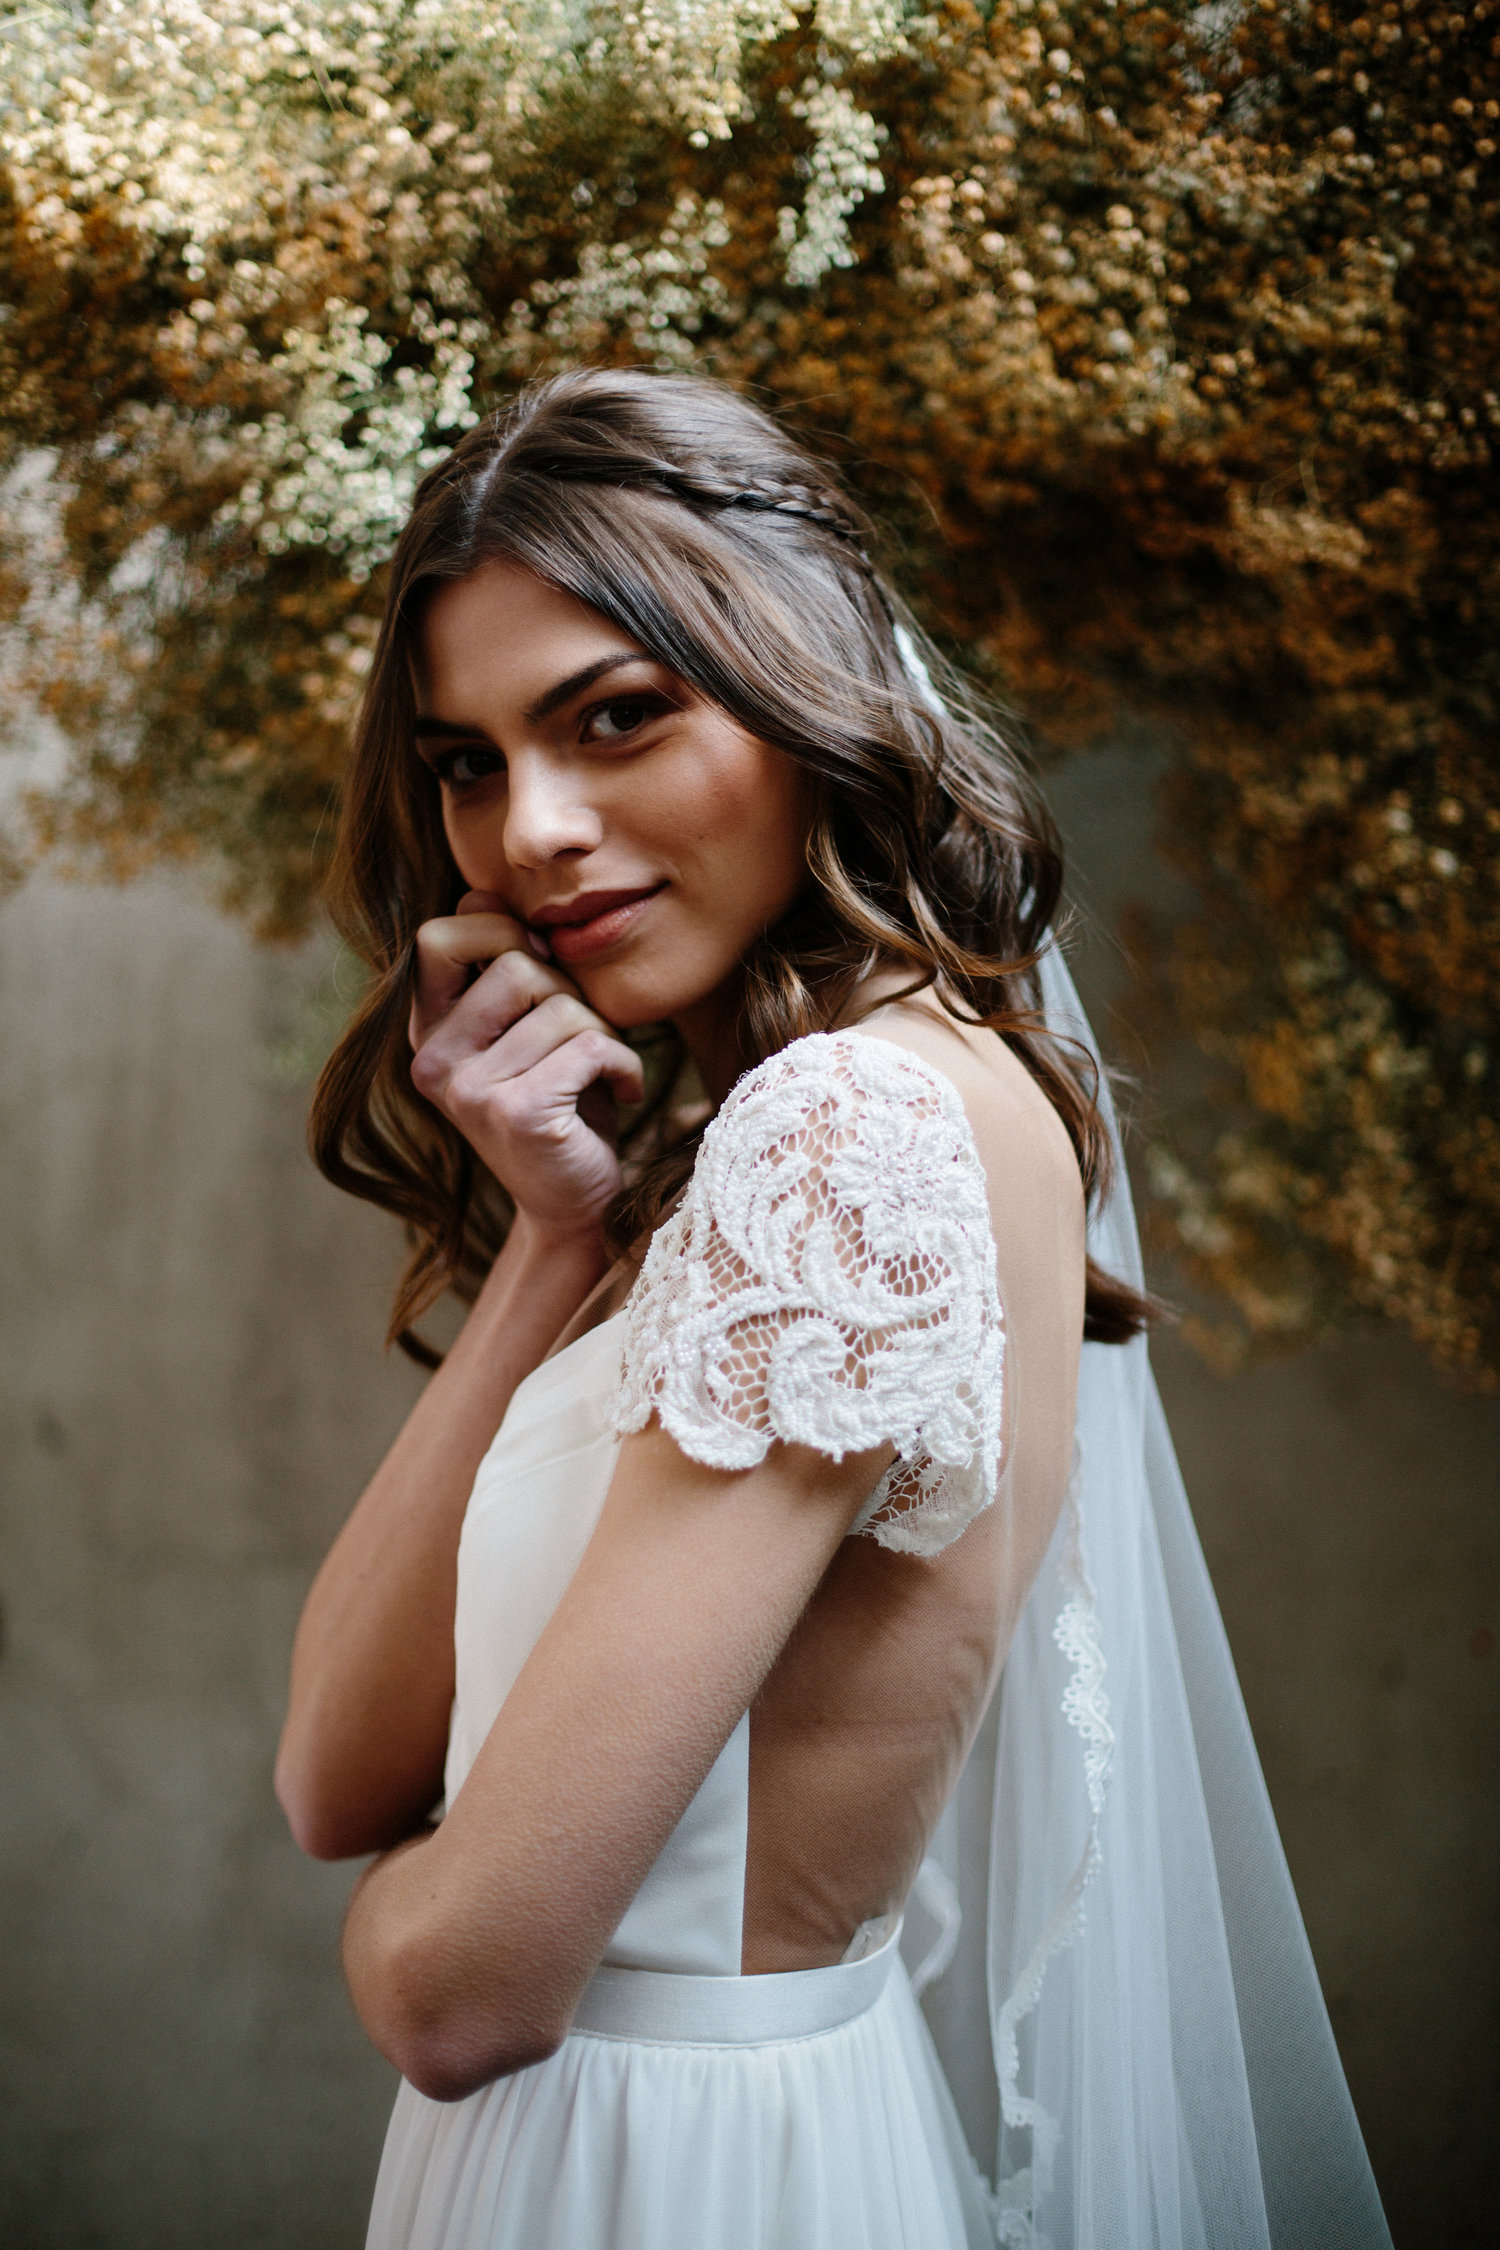 Modern Romantic Wedding Dresses From Truvelle Available At Bohemian Bridal Boutique Archive 12 Ireland TRUVELLE